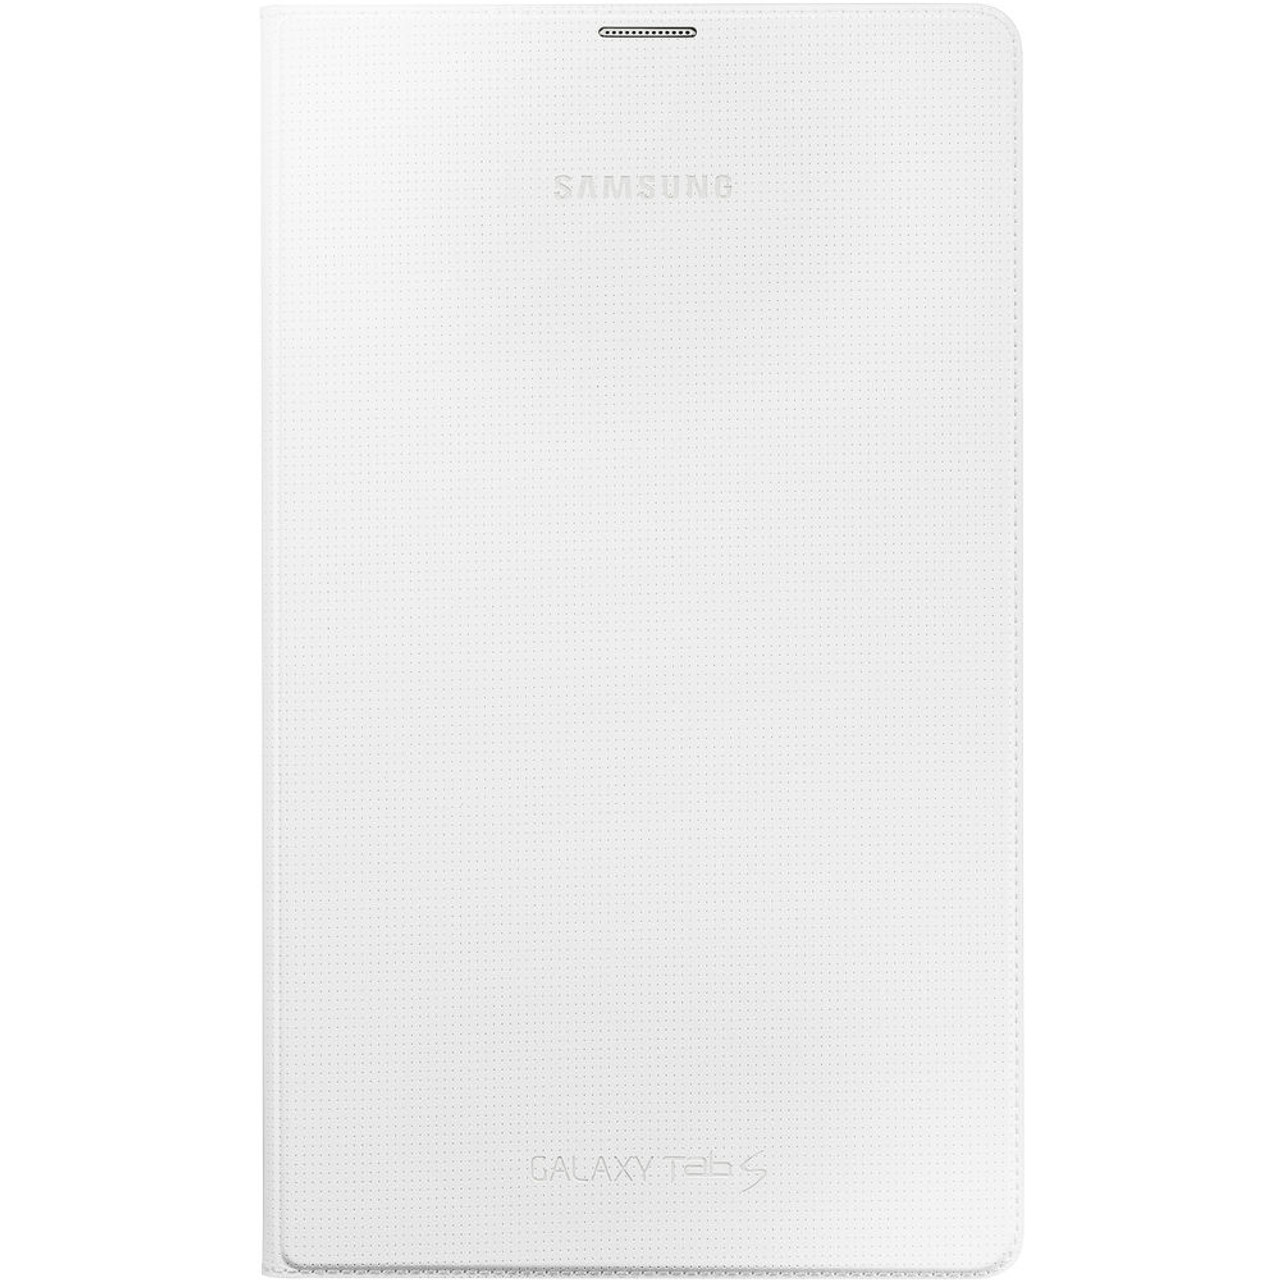 Samsung Tab S 8.4 Simple Cover - Dazzling White